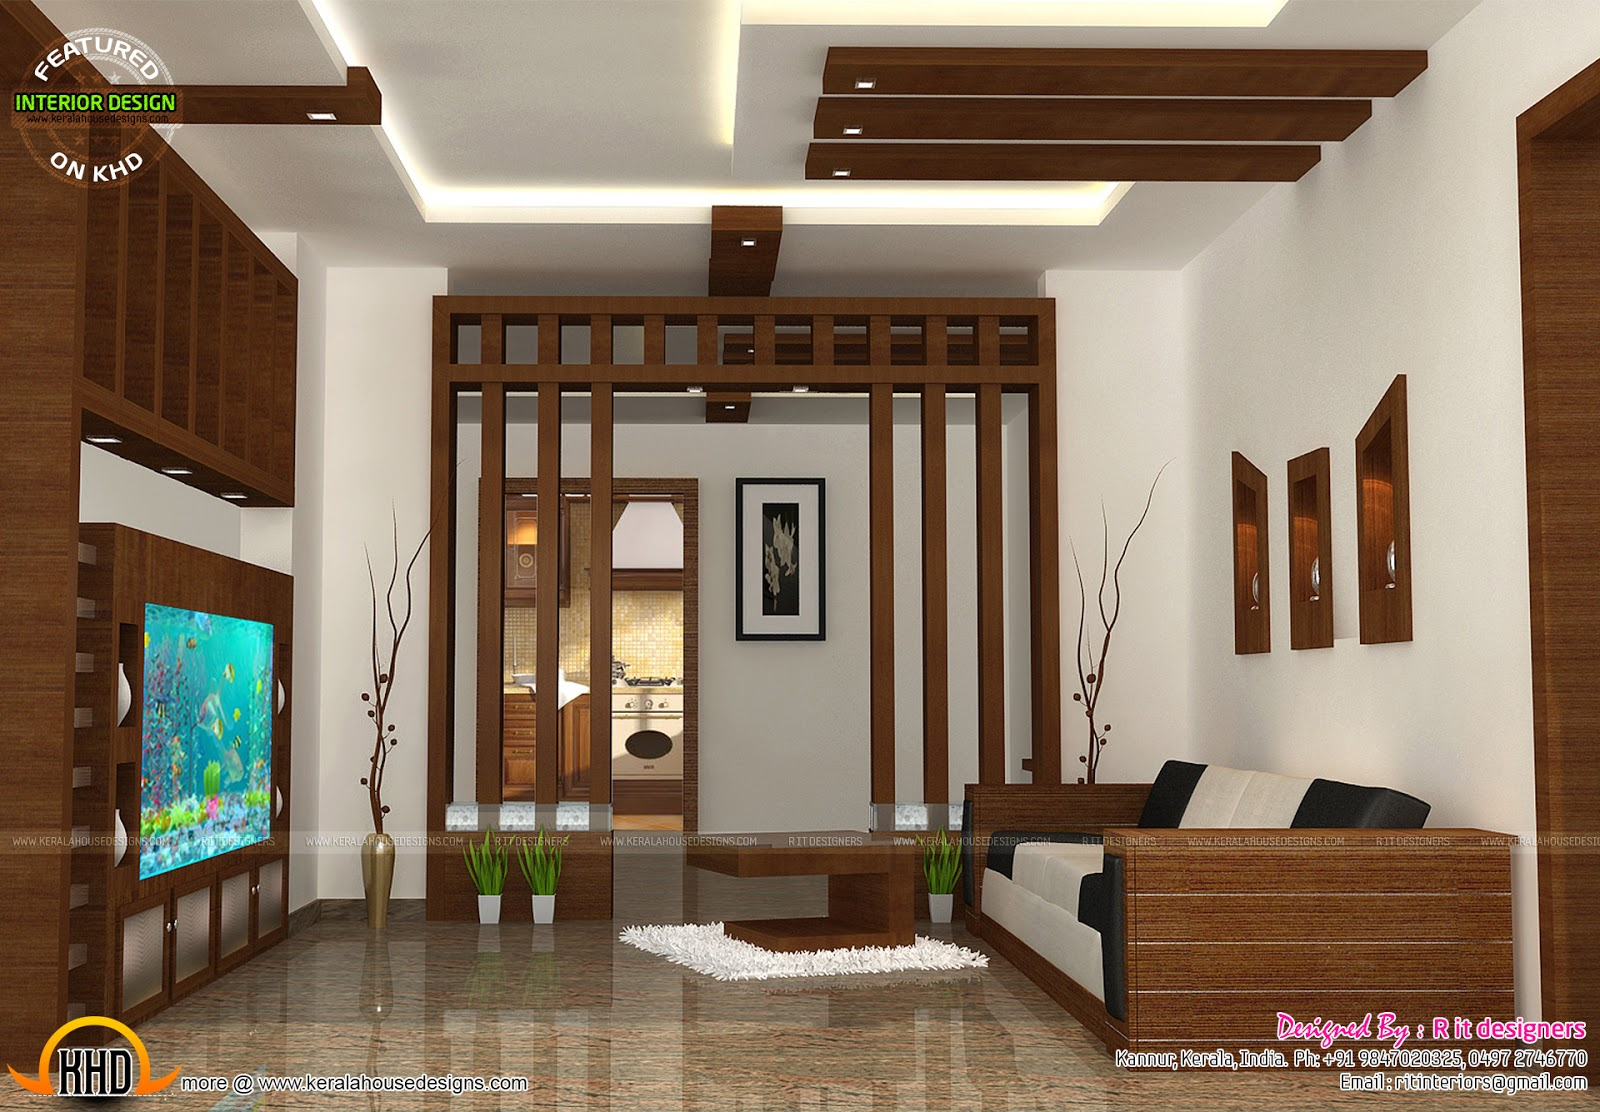 Wooden finish interiors kerala home design and floor plans for House interior design photos